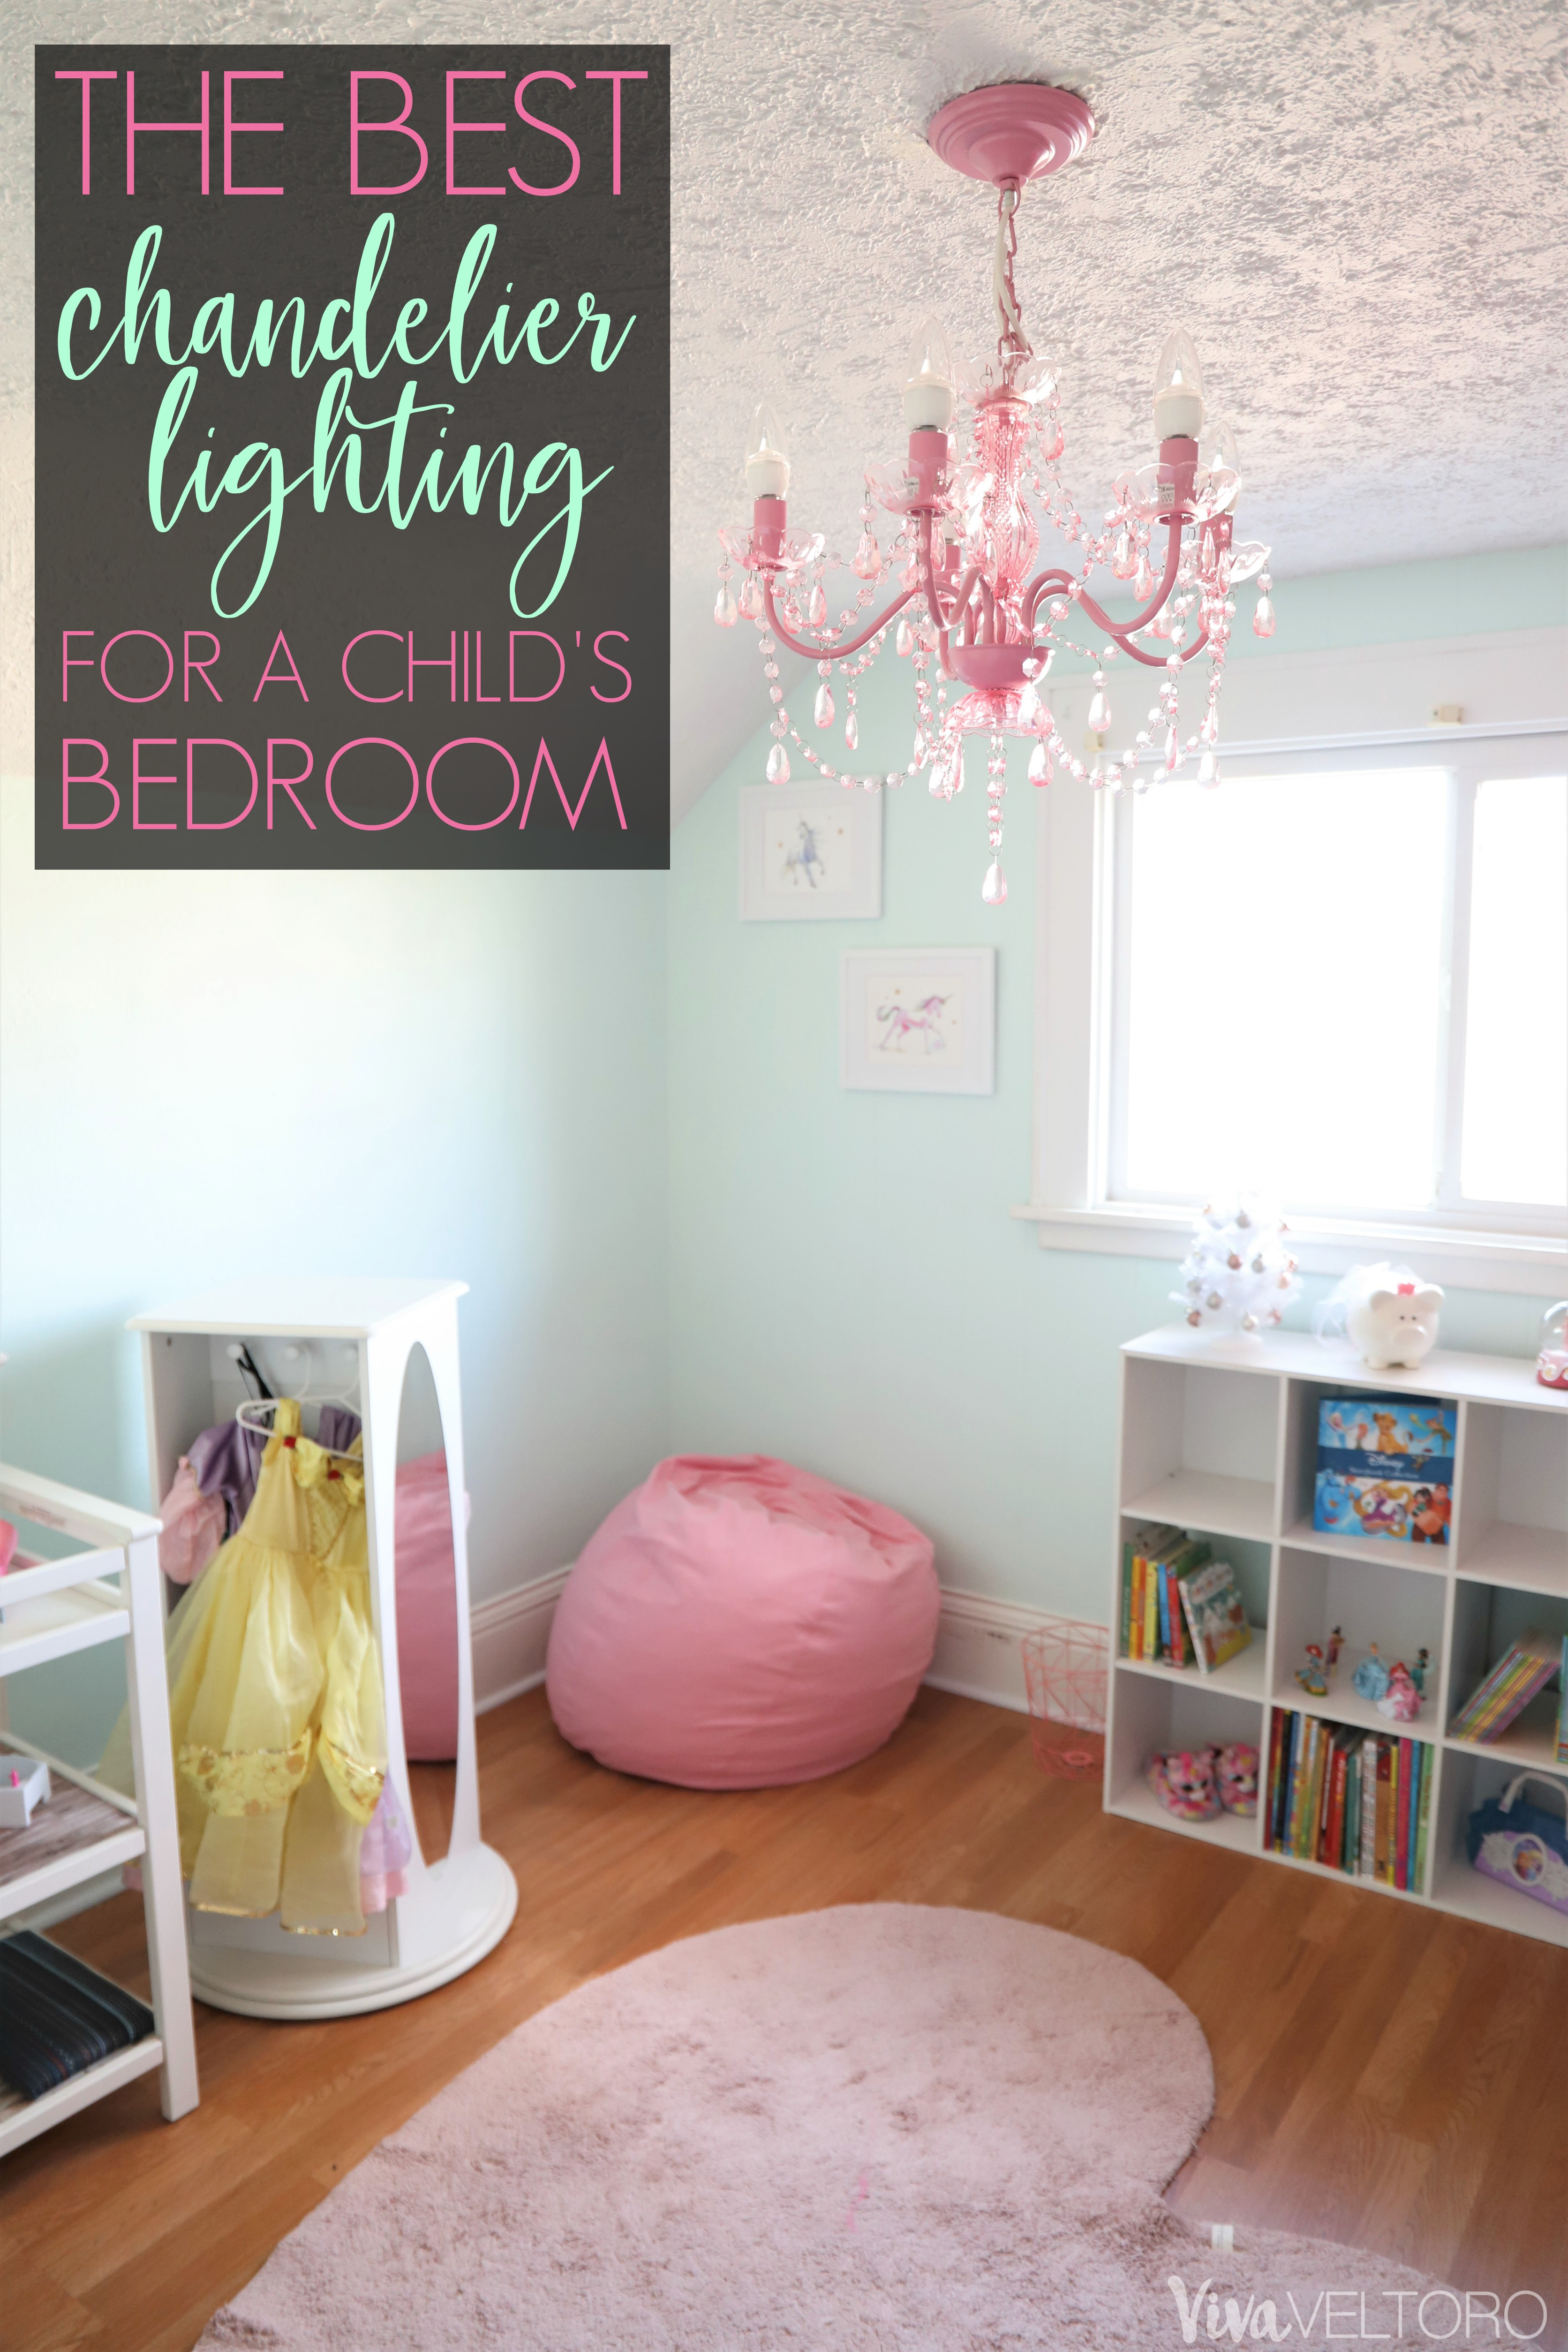 The Best Chandelier Lighting for a Child s Bedroom Viva Veltoro